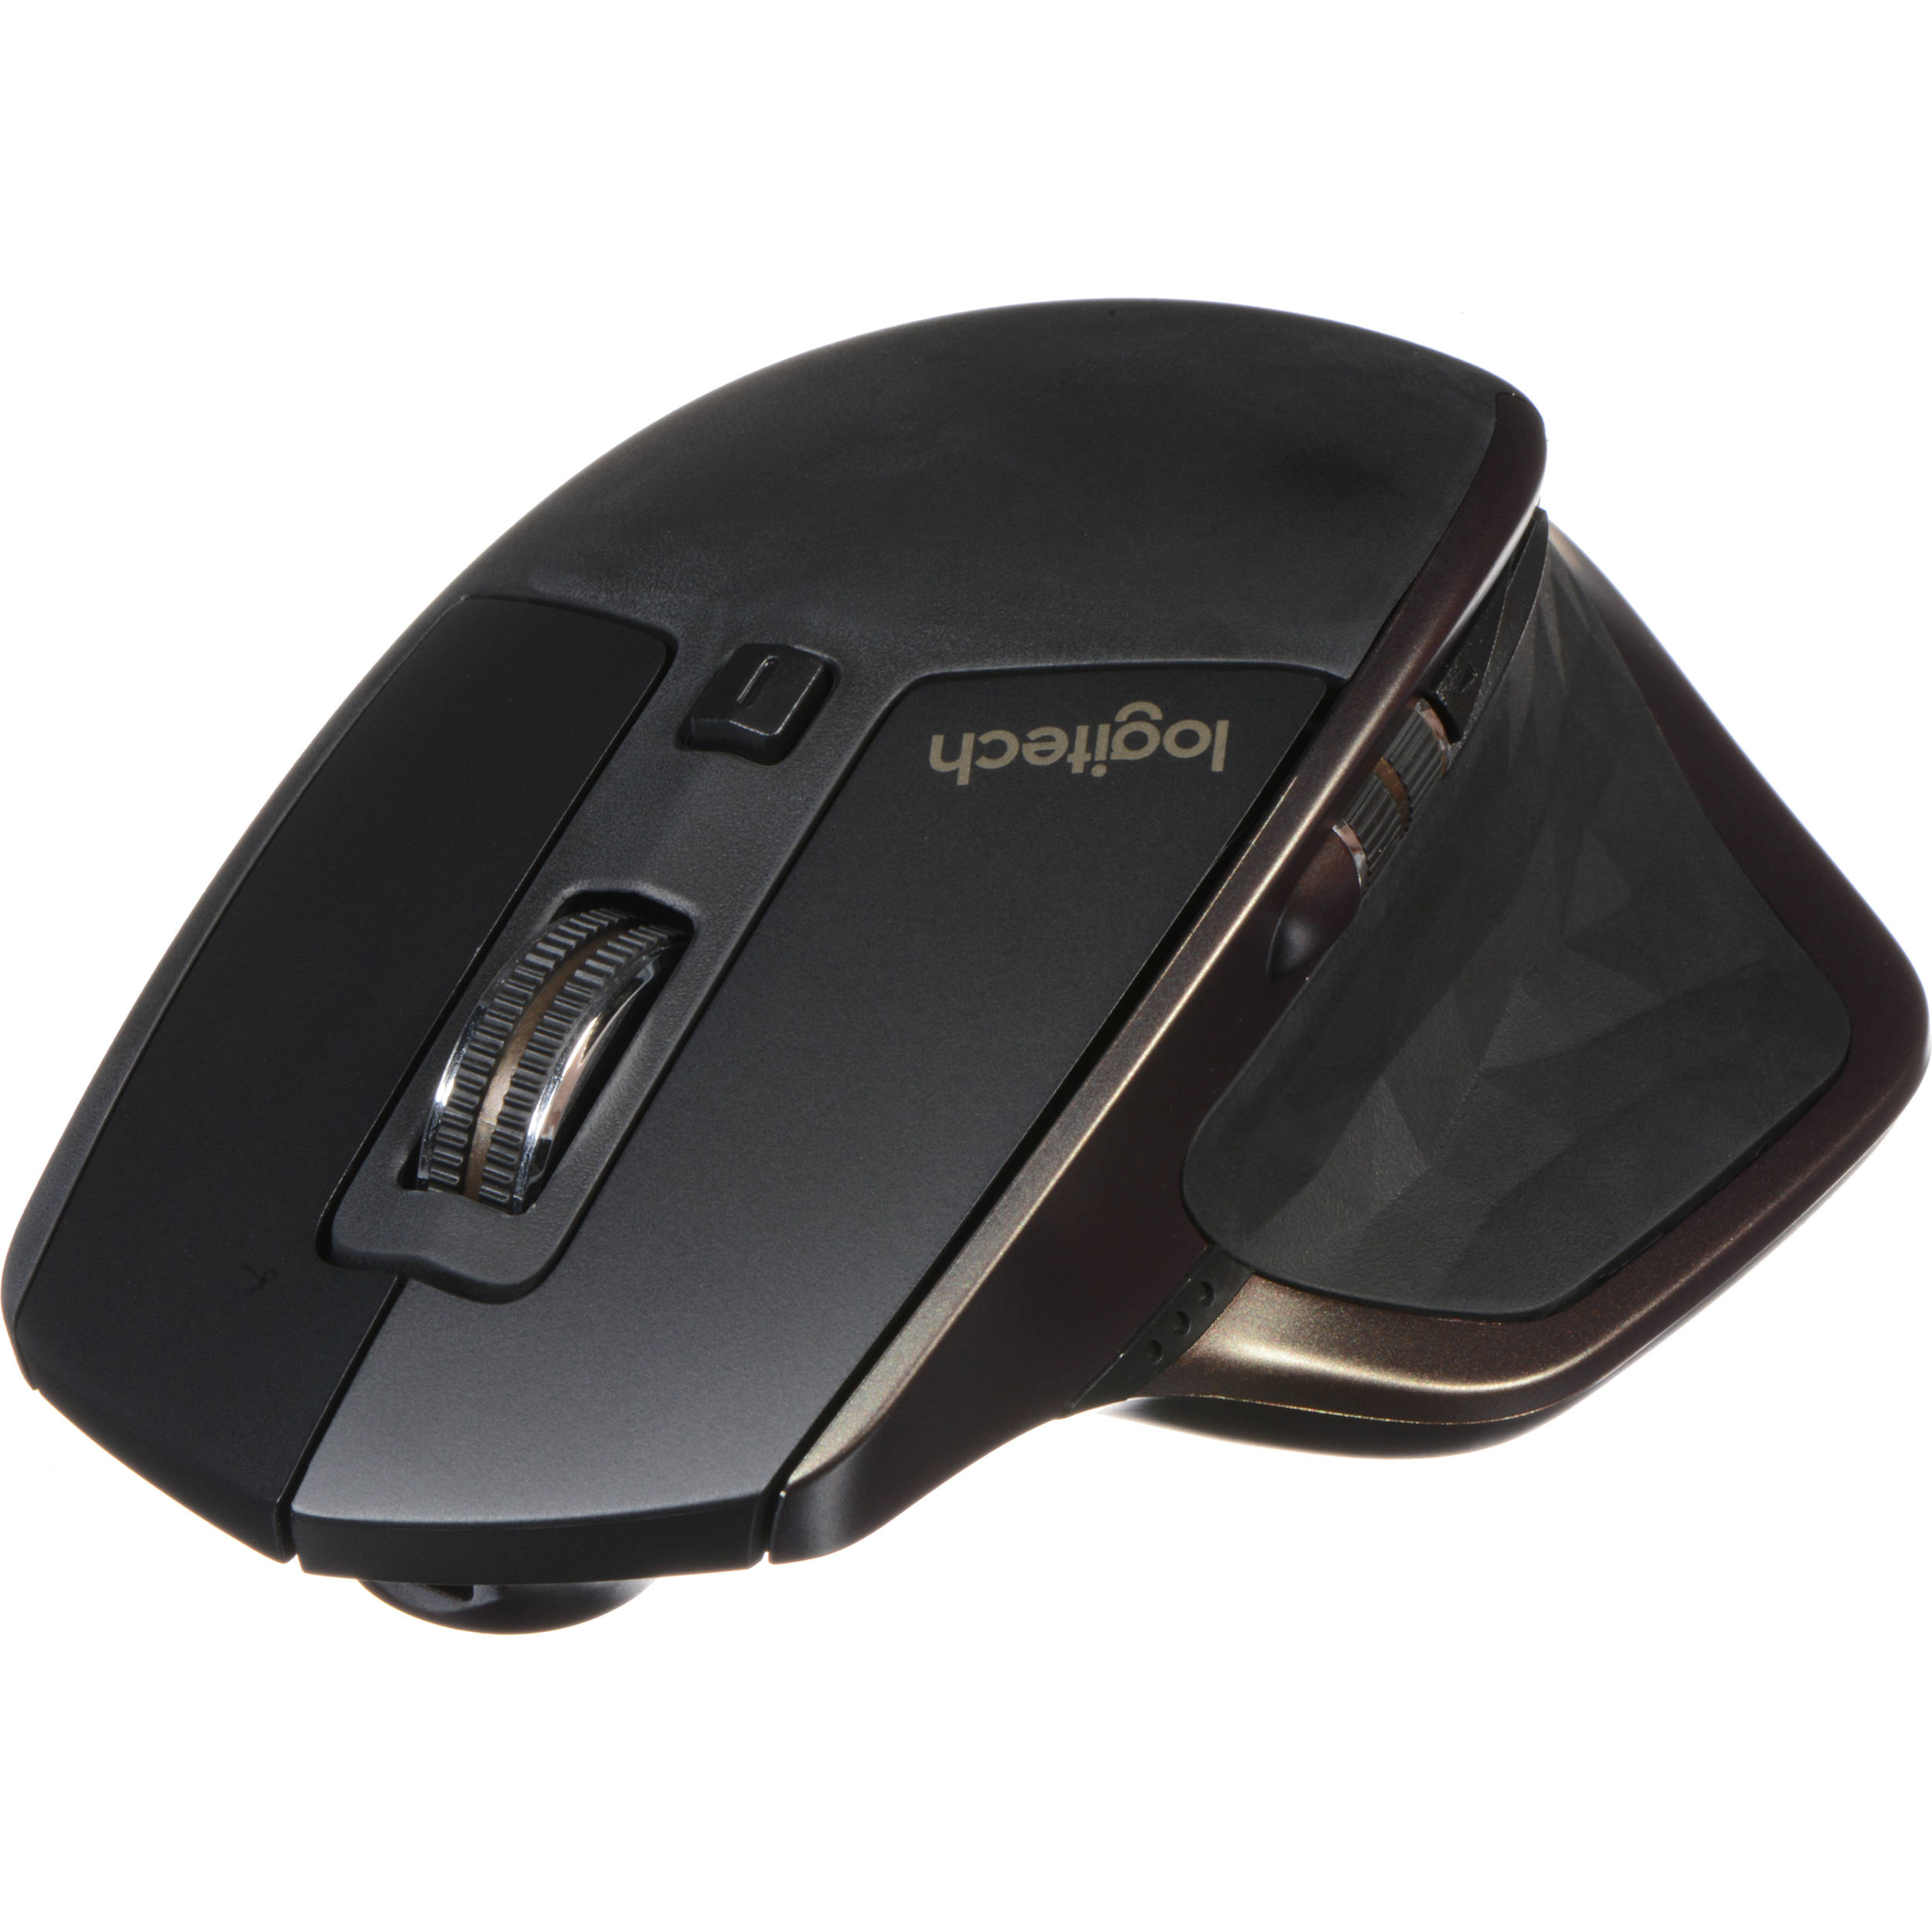 43b9cec8364 Logitech MX Master Wireless Mouse (Black) 910-005228 B&H Photo